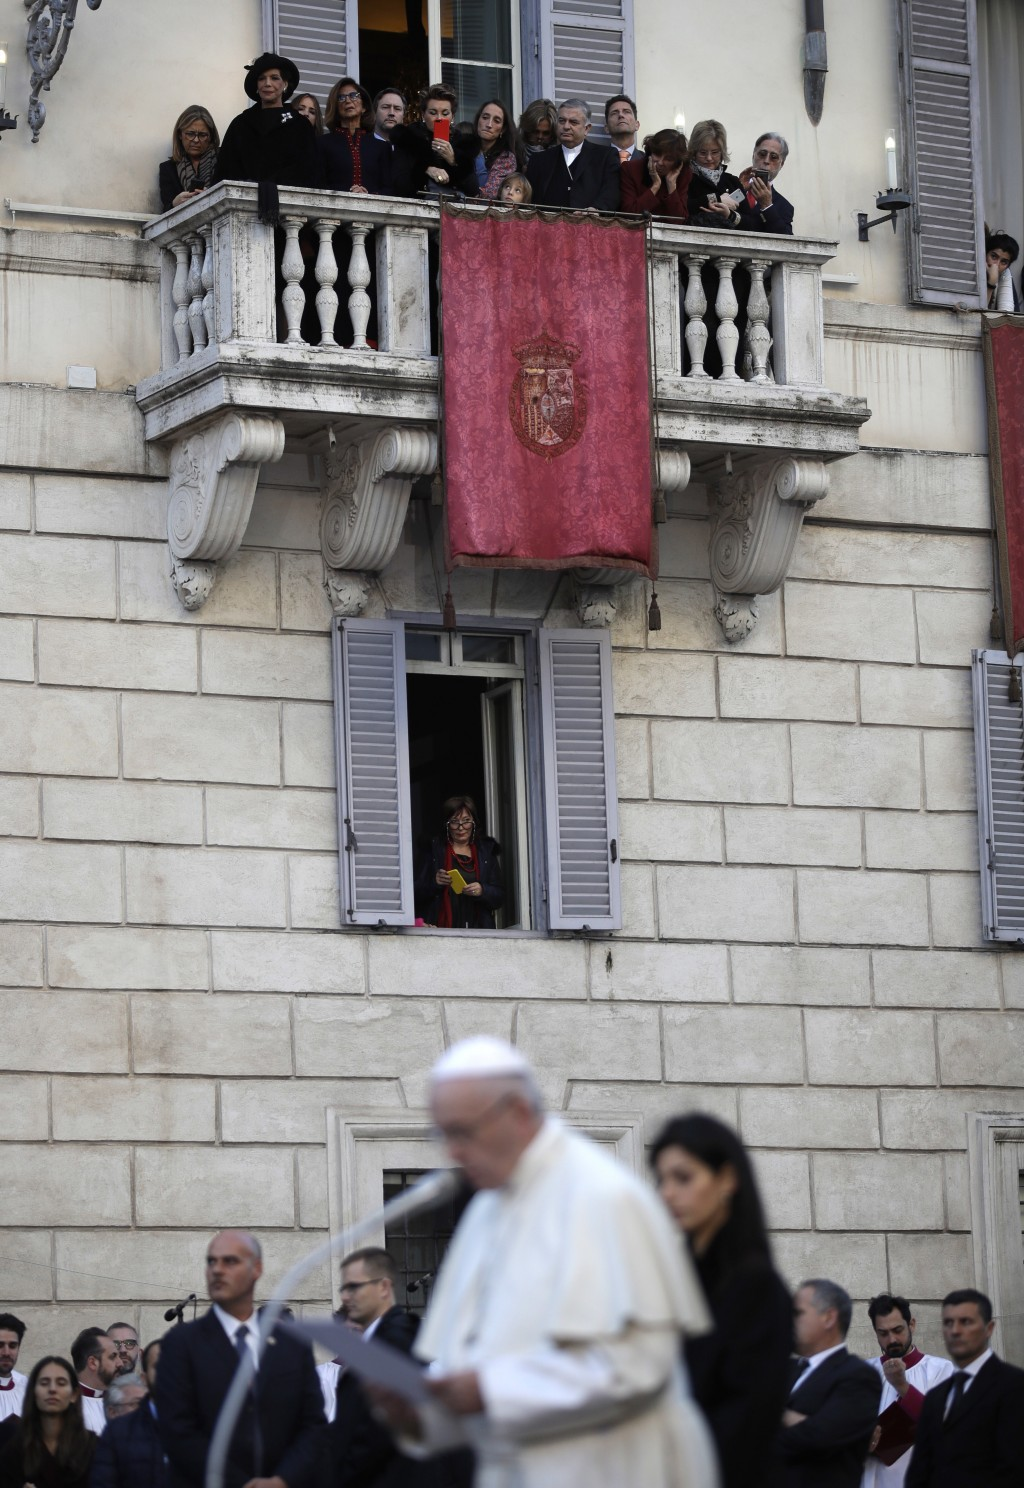 People watch from a balcony as Pope Francis delivers his blessing in front of the statue of the Virgin Mary, near Rome's Spanish Steps Saturday, Dec.